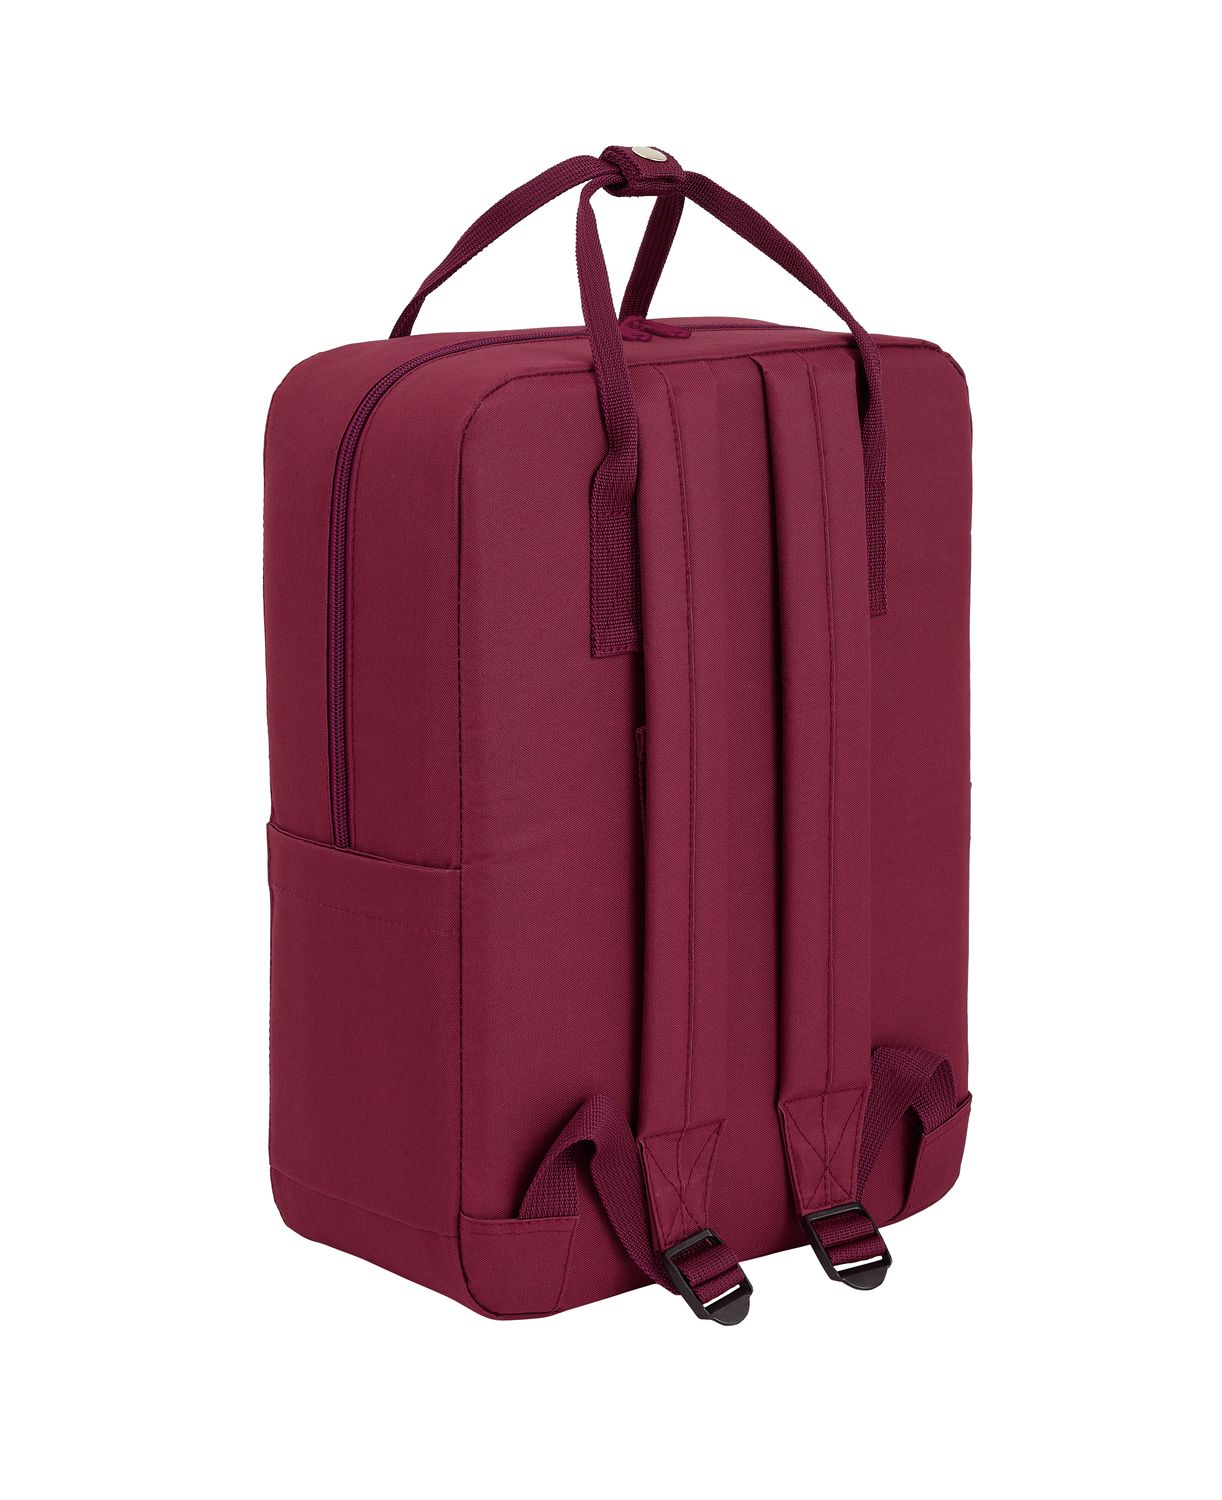 BENETTON BURGUNDY Backpack with handles 38 cm – image 3